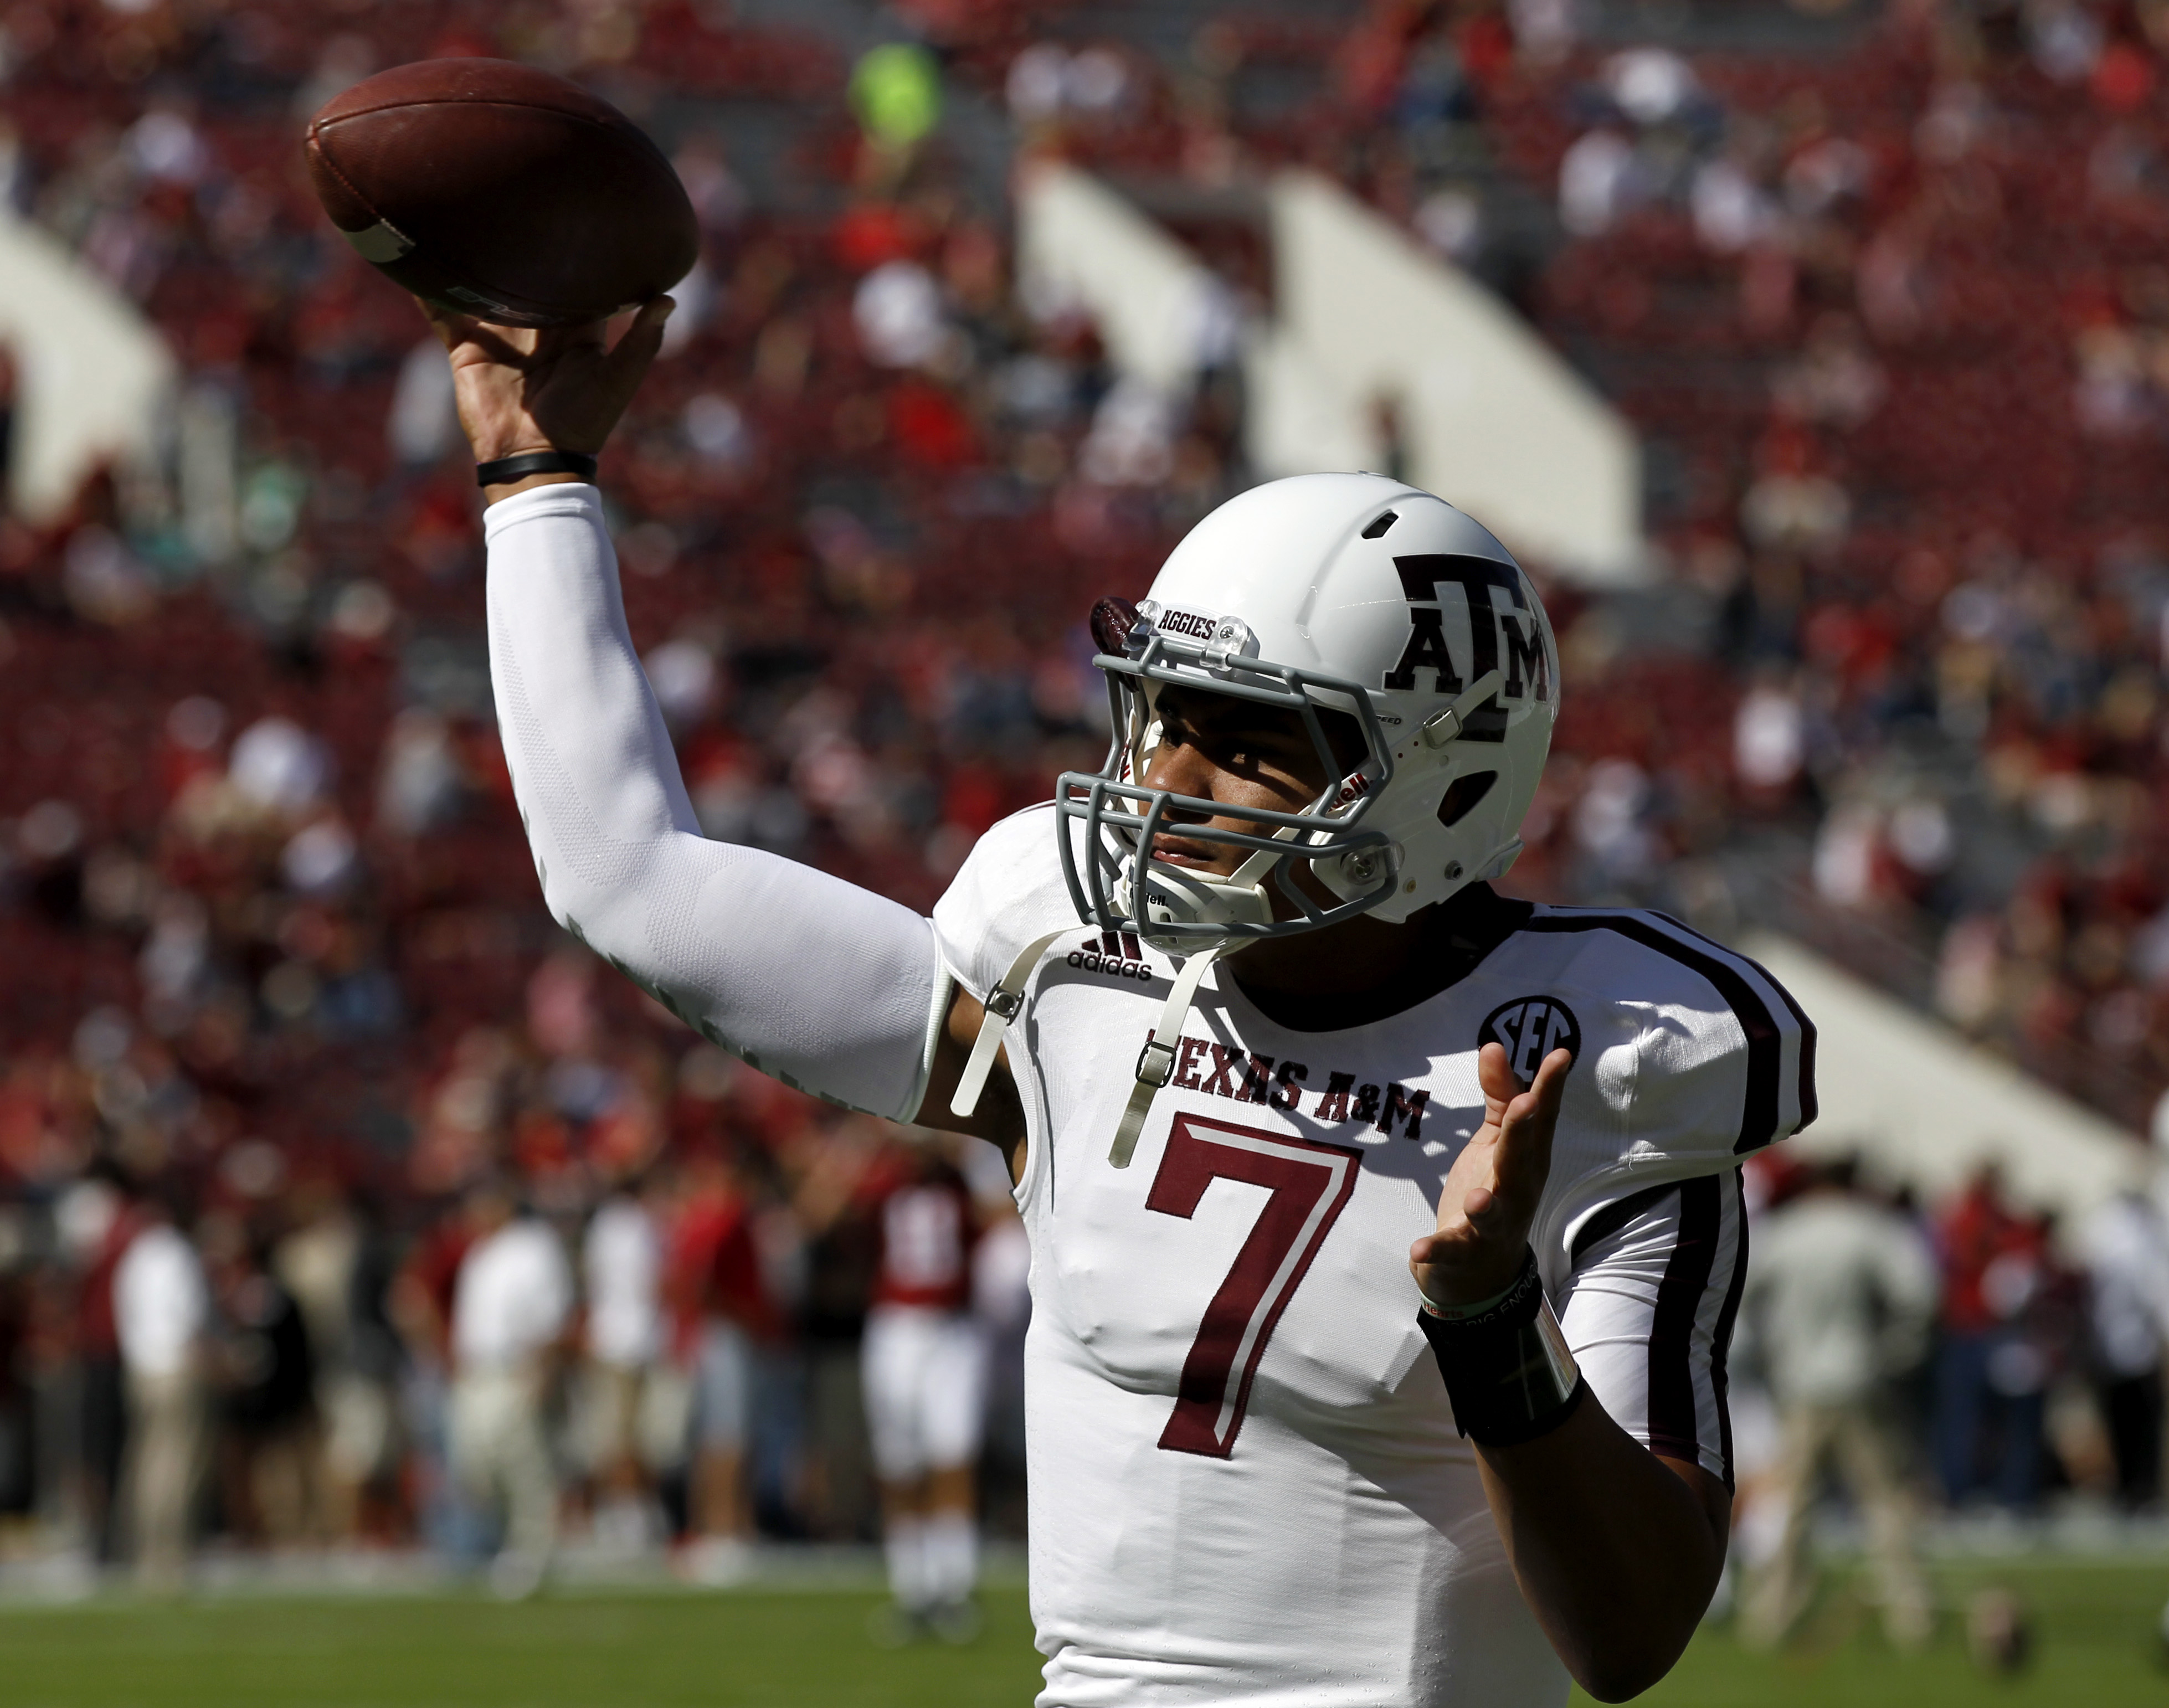 Kenny Hill could resurrect his career at TCU. (AP Photo/Butch Dill)